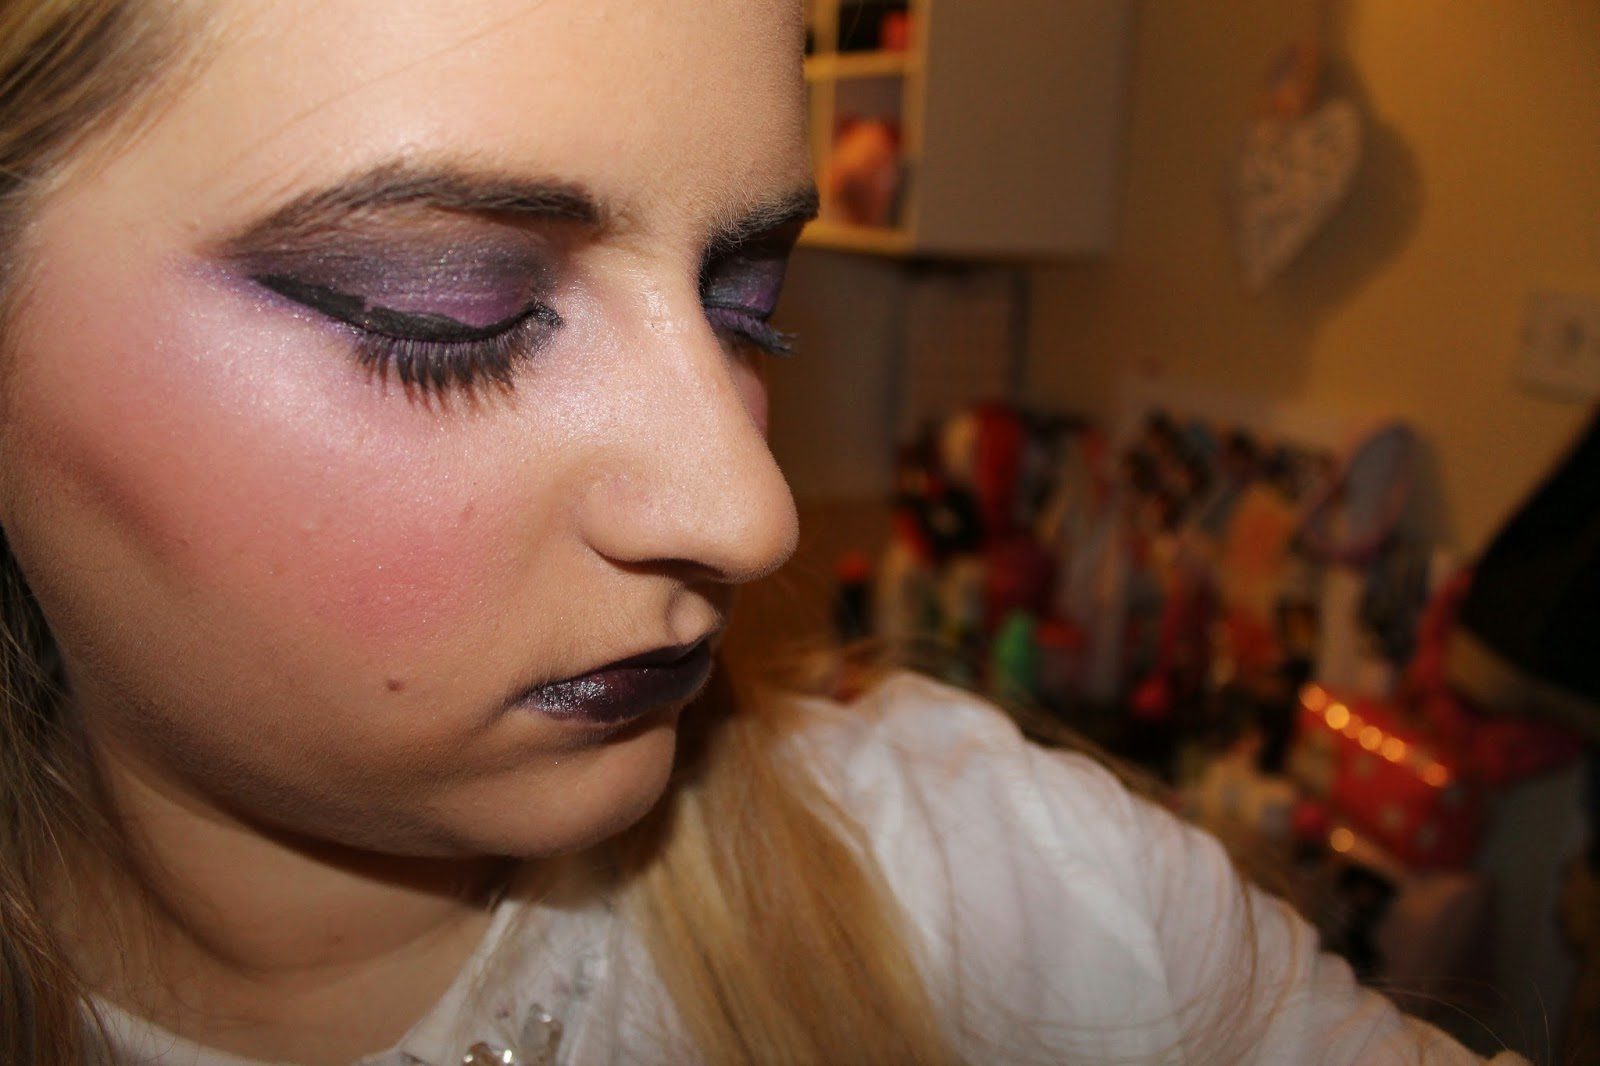 Purple and black dress makeup pictures